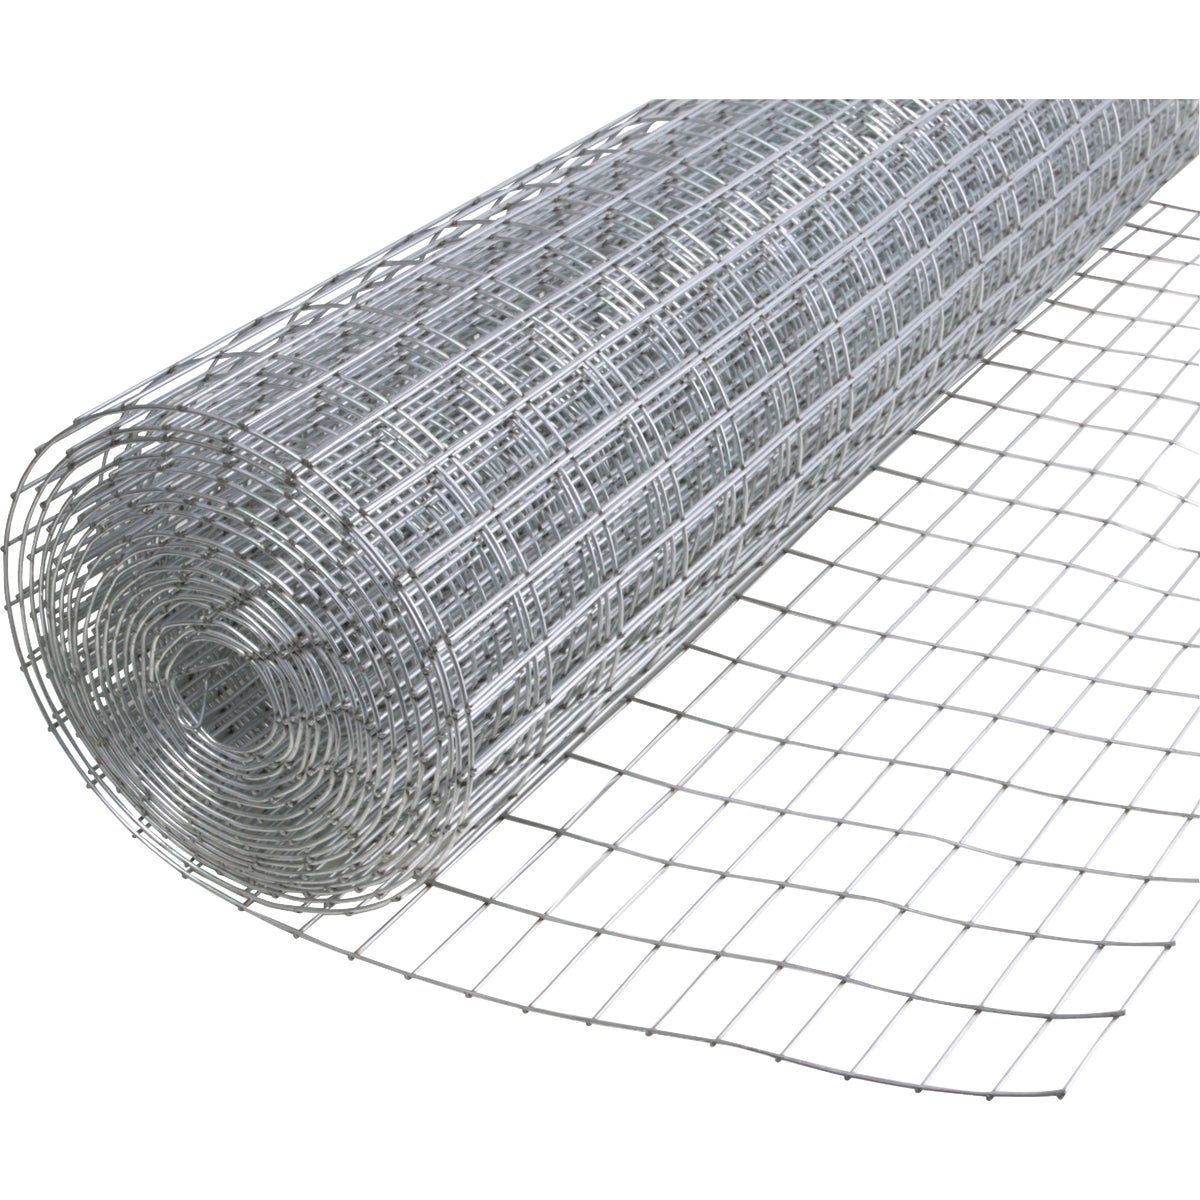 "48""X25' 1X2 14G FENCE - 700734 by Do it Best"